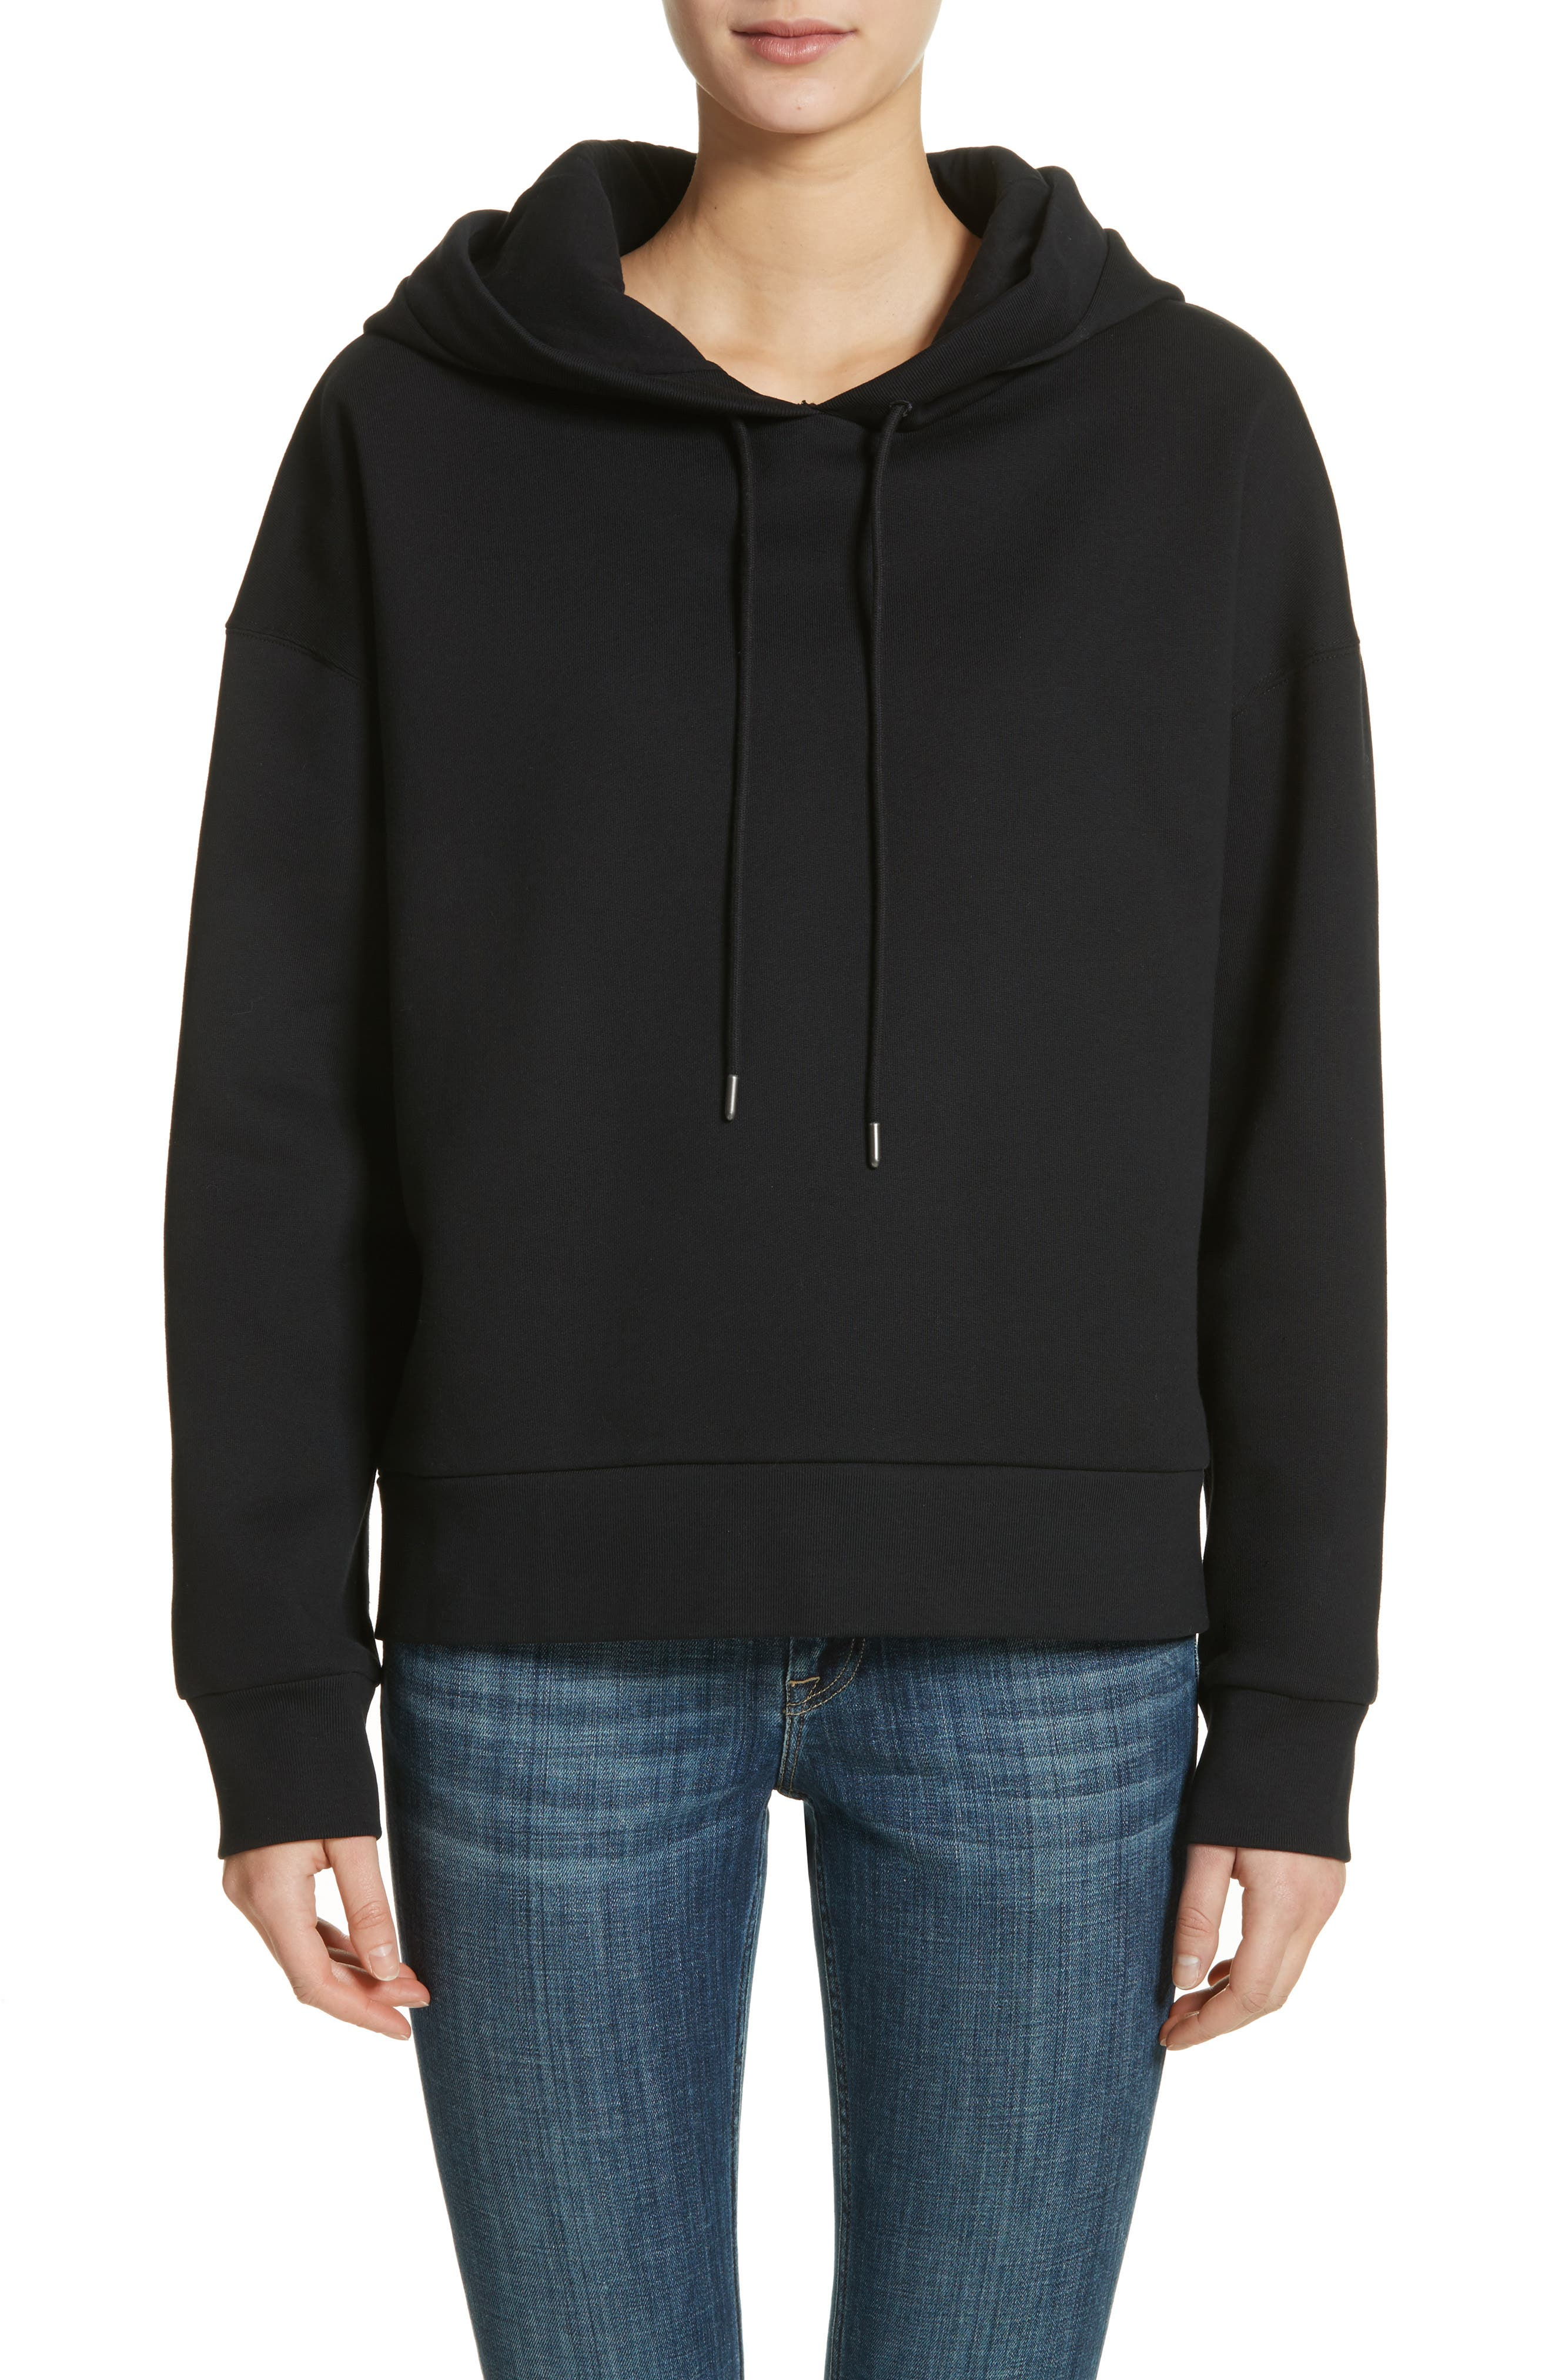 Escara Embroidered Hoodie,                             Main thumbnail 1, color,                             001